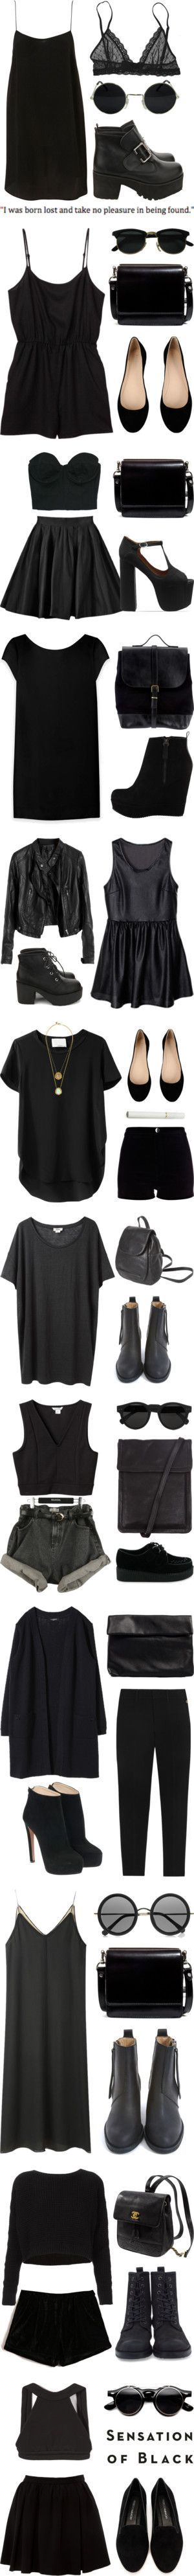 Little & black are not just for dresses! Jazz up your style with summery blacks!